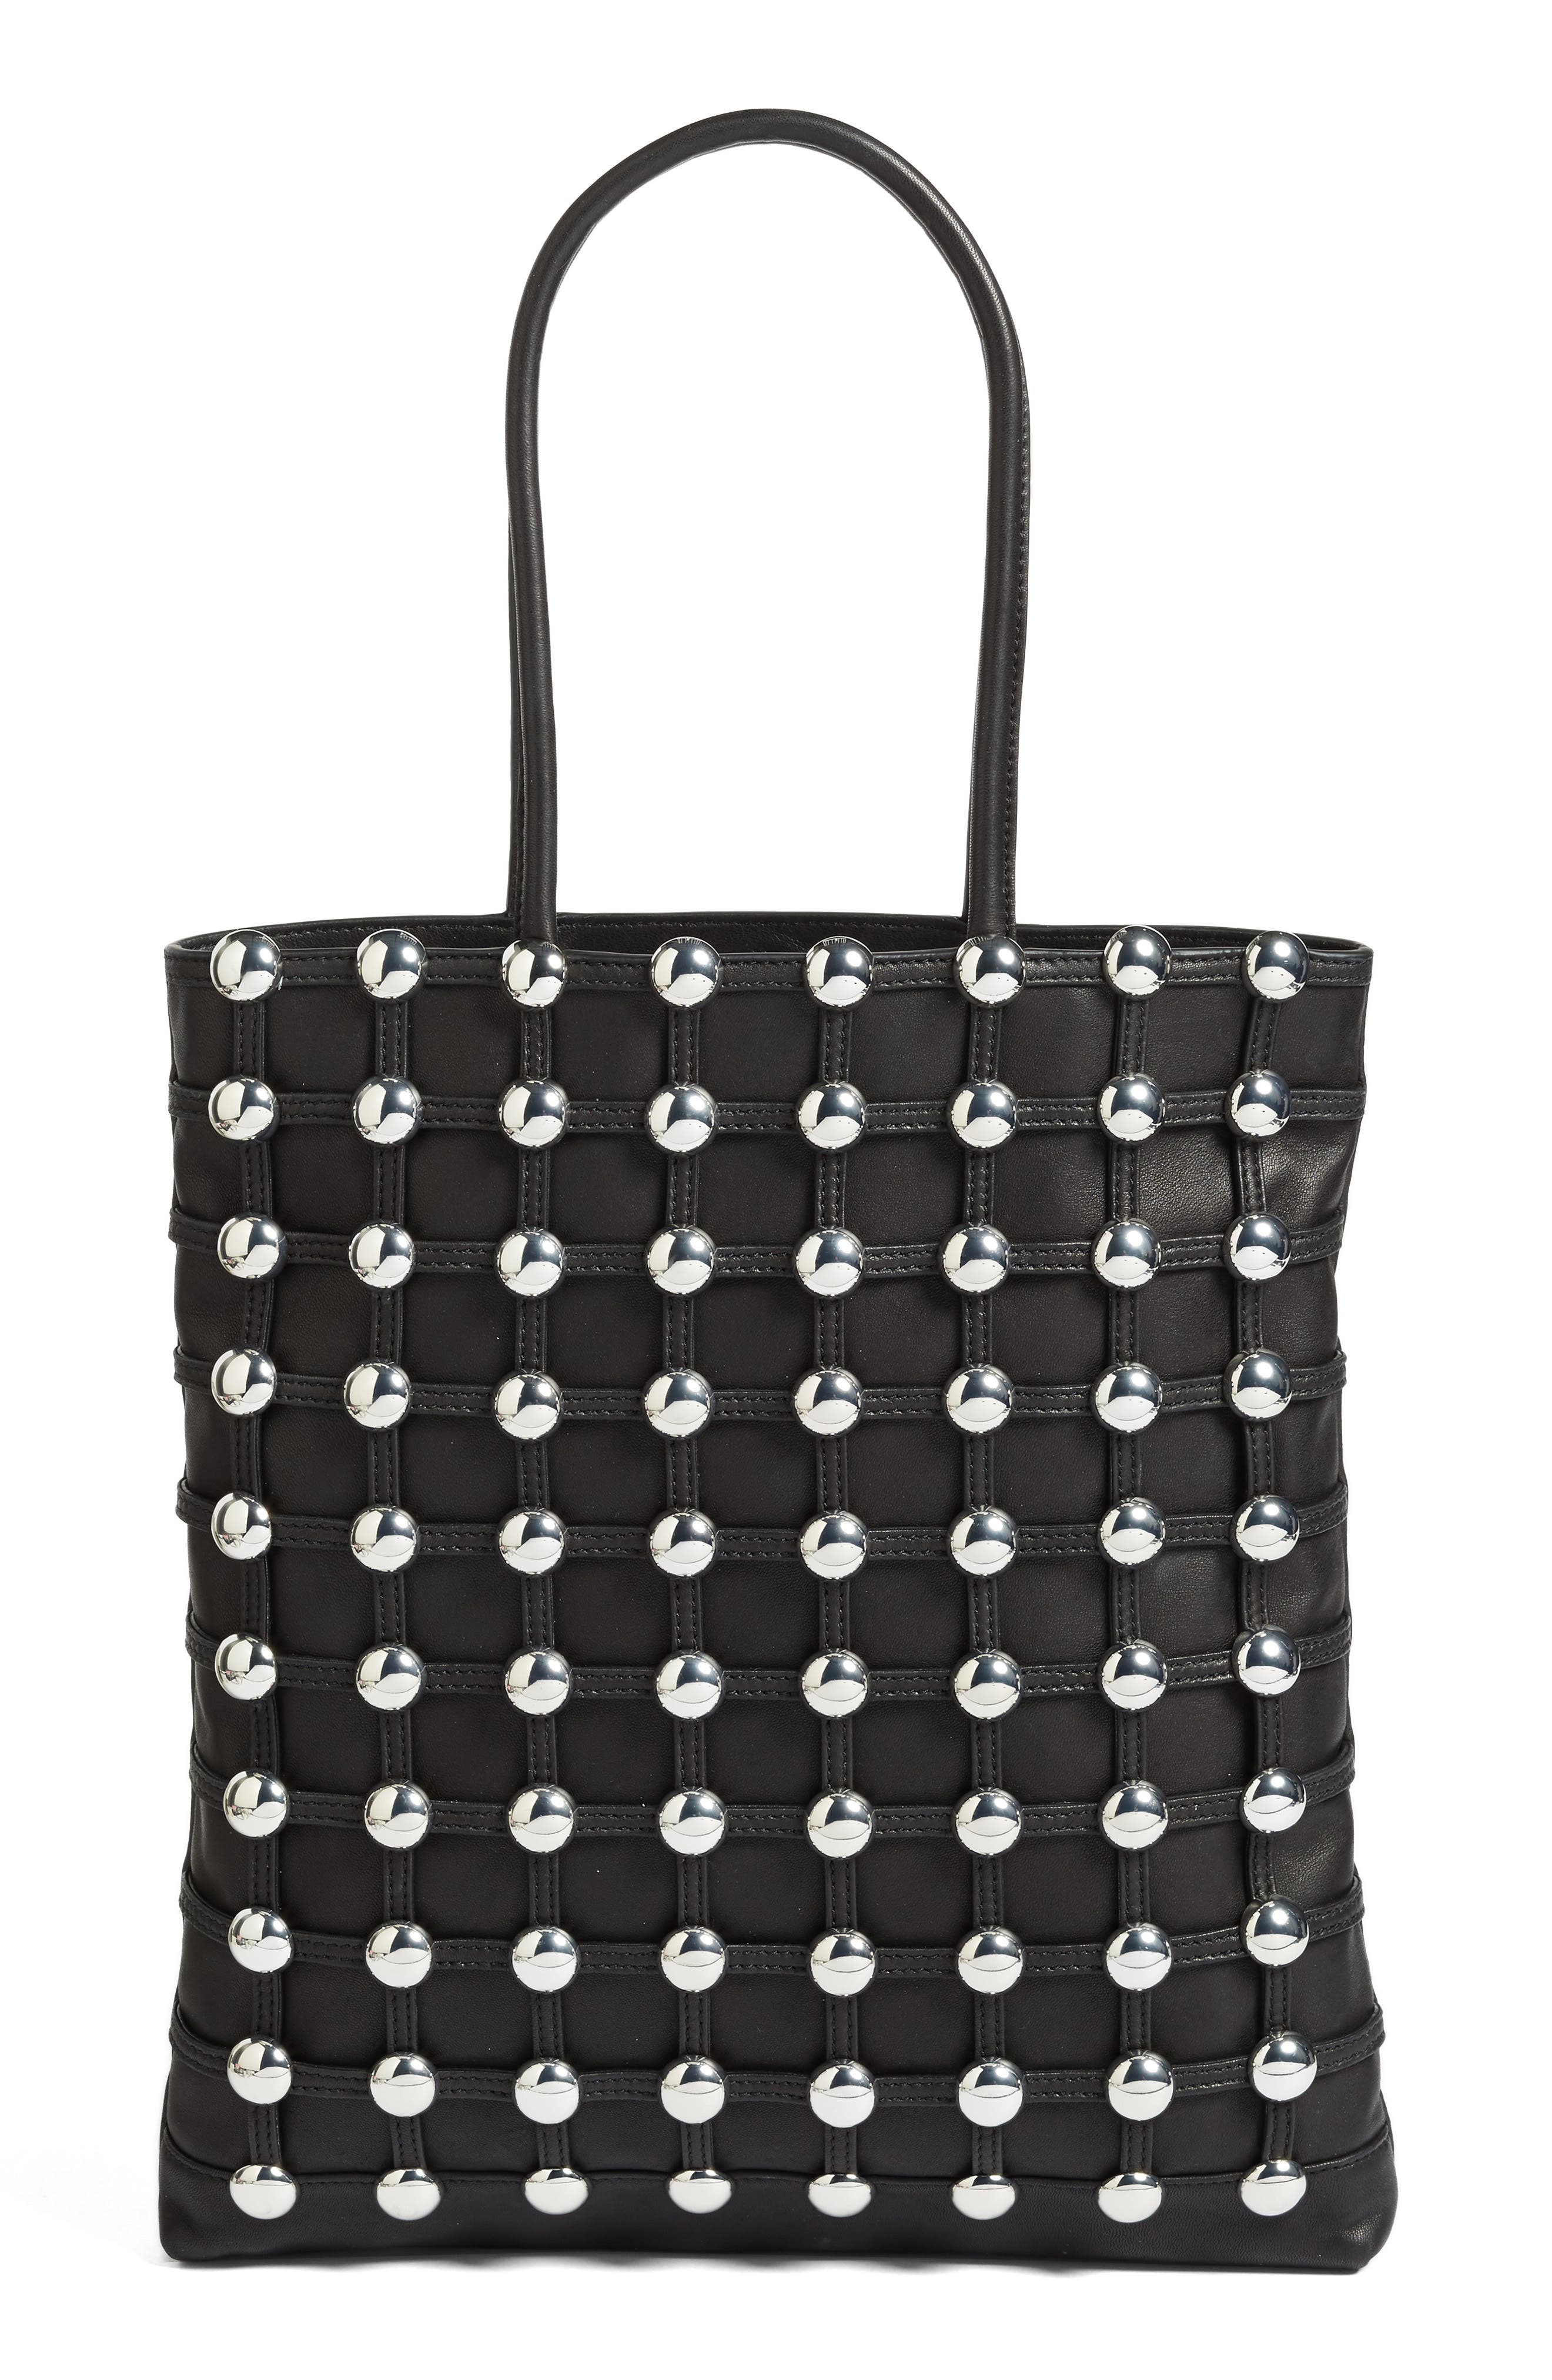 ALEXANDER WANG Studded Lambskin Leather Cage Tote